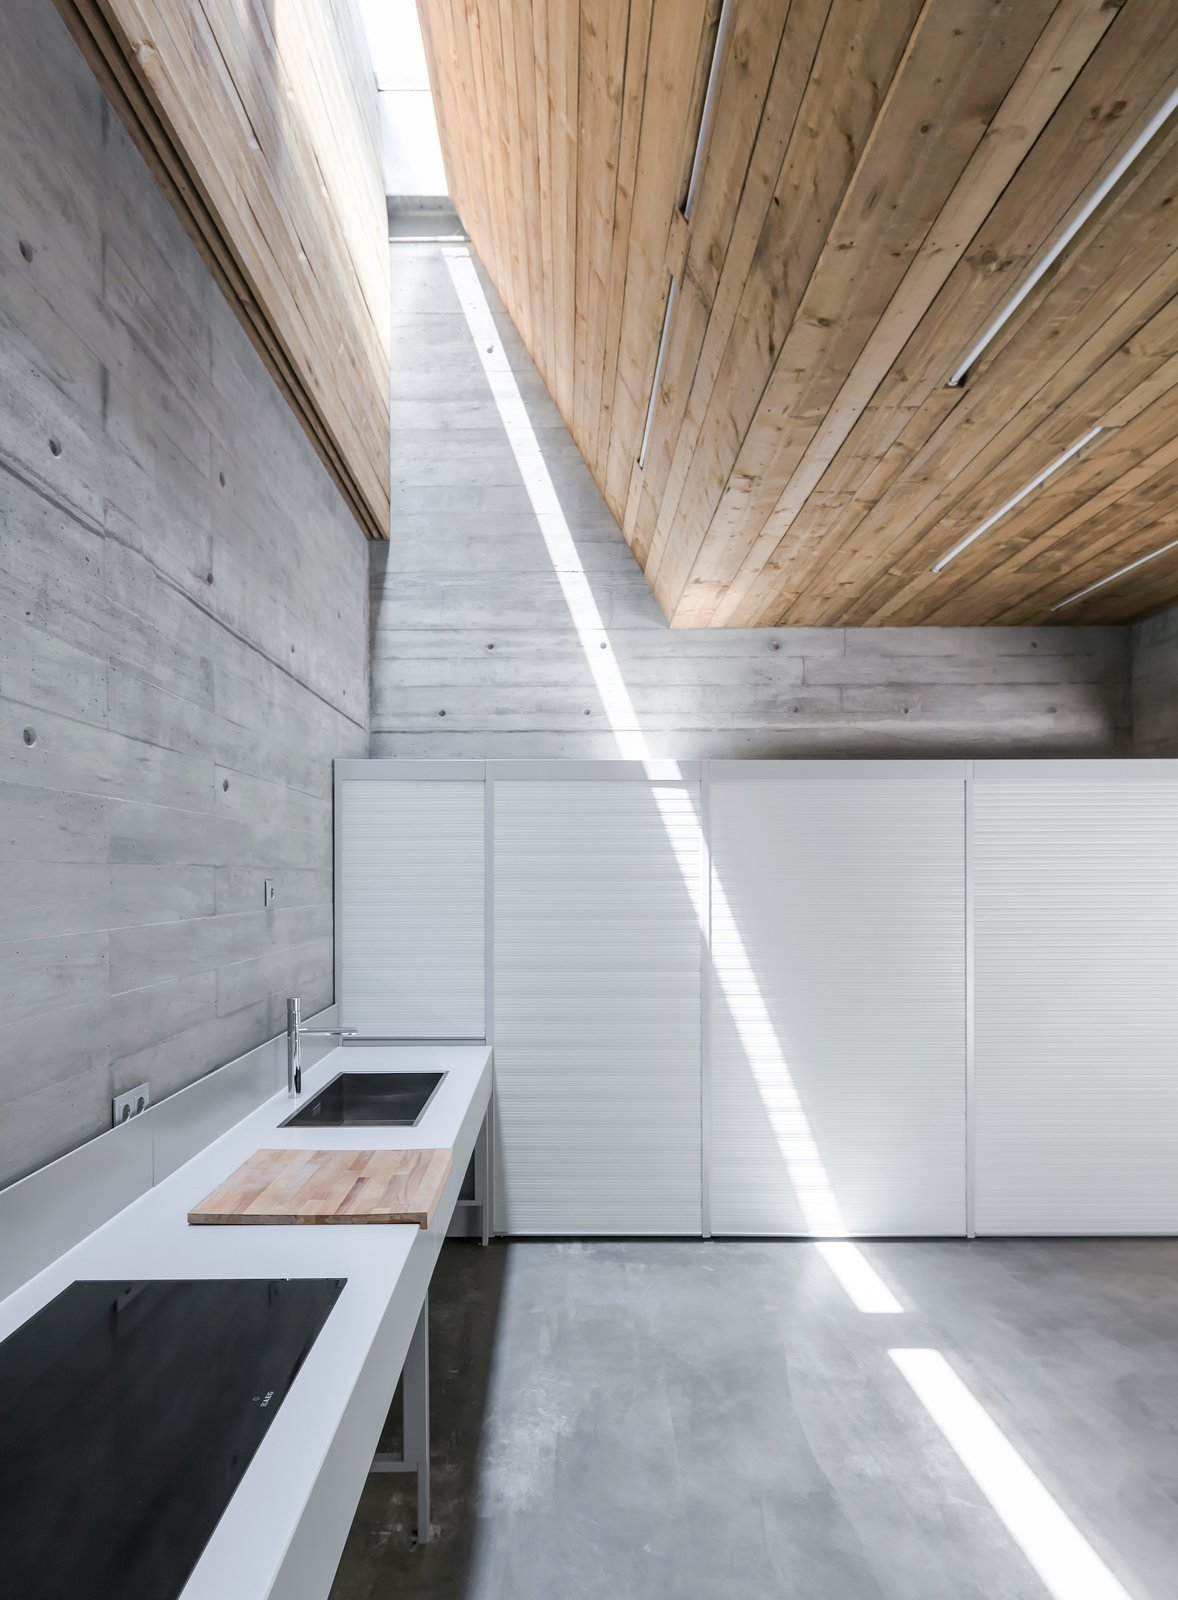 House in Matosinhos is a minimal home located in Matosinhos, Portugal, created by nu.ma.  The lot, where the house is inserted, has a non-regular shape, longitudinal, and perpendicular to the street Nossa Senhora da Conceição. It was important to keep the alignment of the house with the existing buildings in order to avoid formal irregularities within the street development. The interior spatial distribution is separated by function and by floors. Due to the longitudinal nature of the lot, the architects proposed an internal yard at the center of the home to allow for natural light to enter the dining/living room and kitchen.  Concrete from A Half-Buried Home Fights for Sunlight